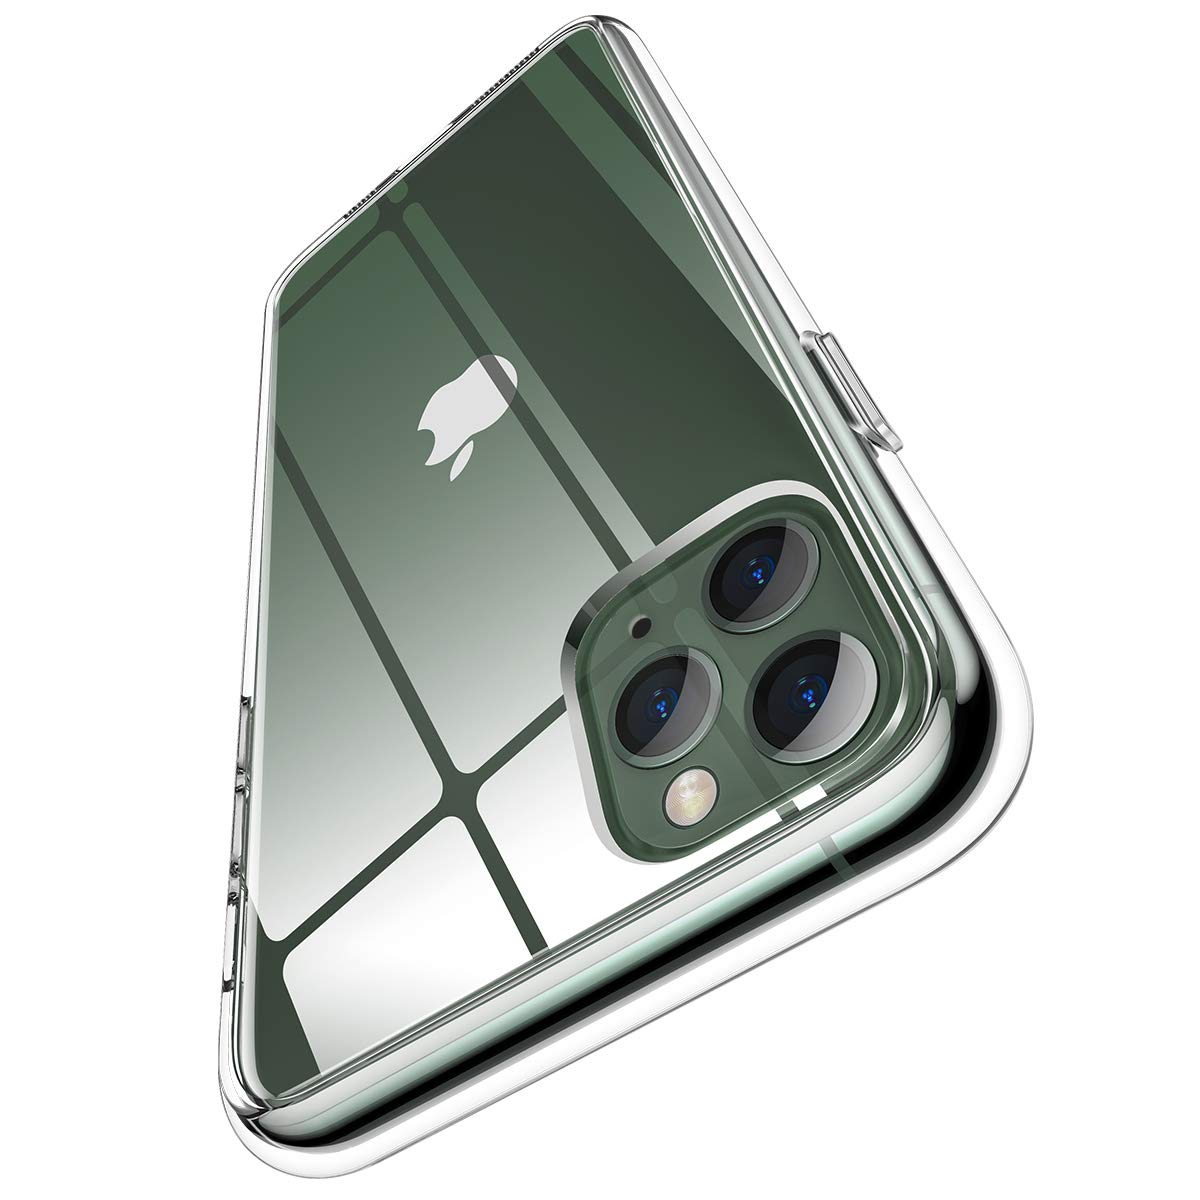 """Meifigno Natural Series iPhone 11 Pro Max Case, [Anti-Yellow], Clear Hard PC with Soft TPU Edges, Protective Case Designed for iPhone 11 Pro Max 6.5"""" (2019), Clear"""